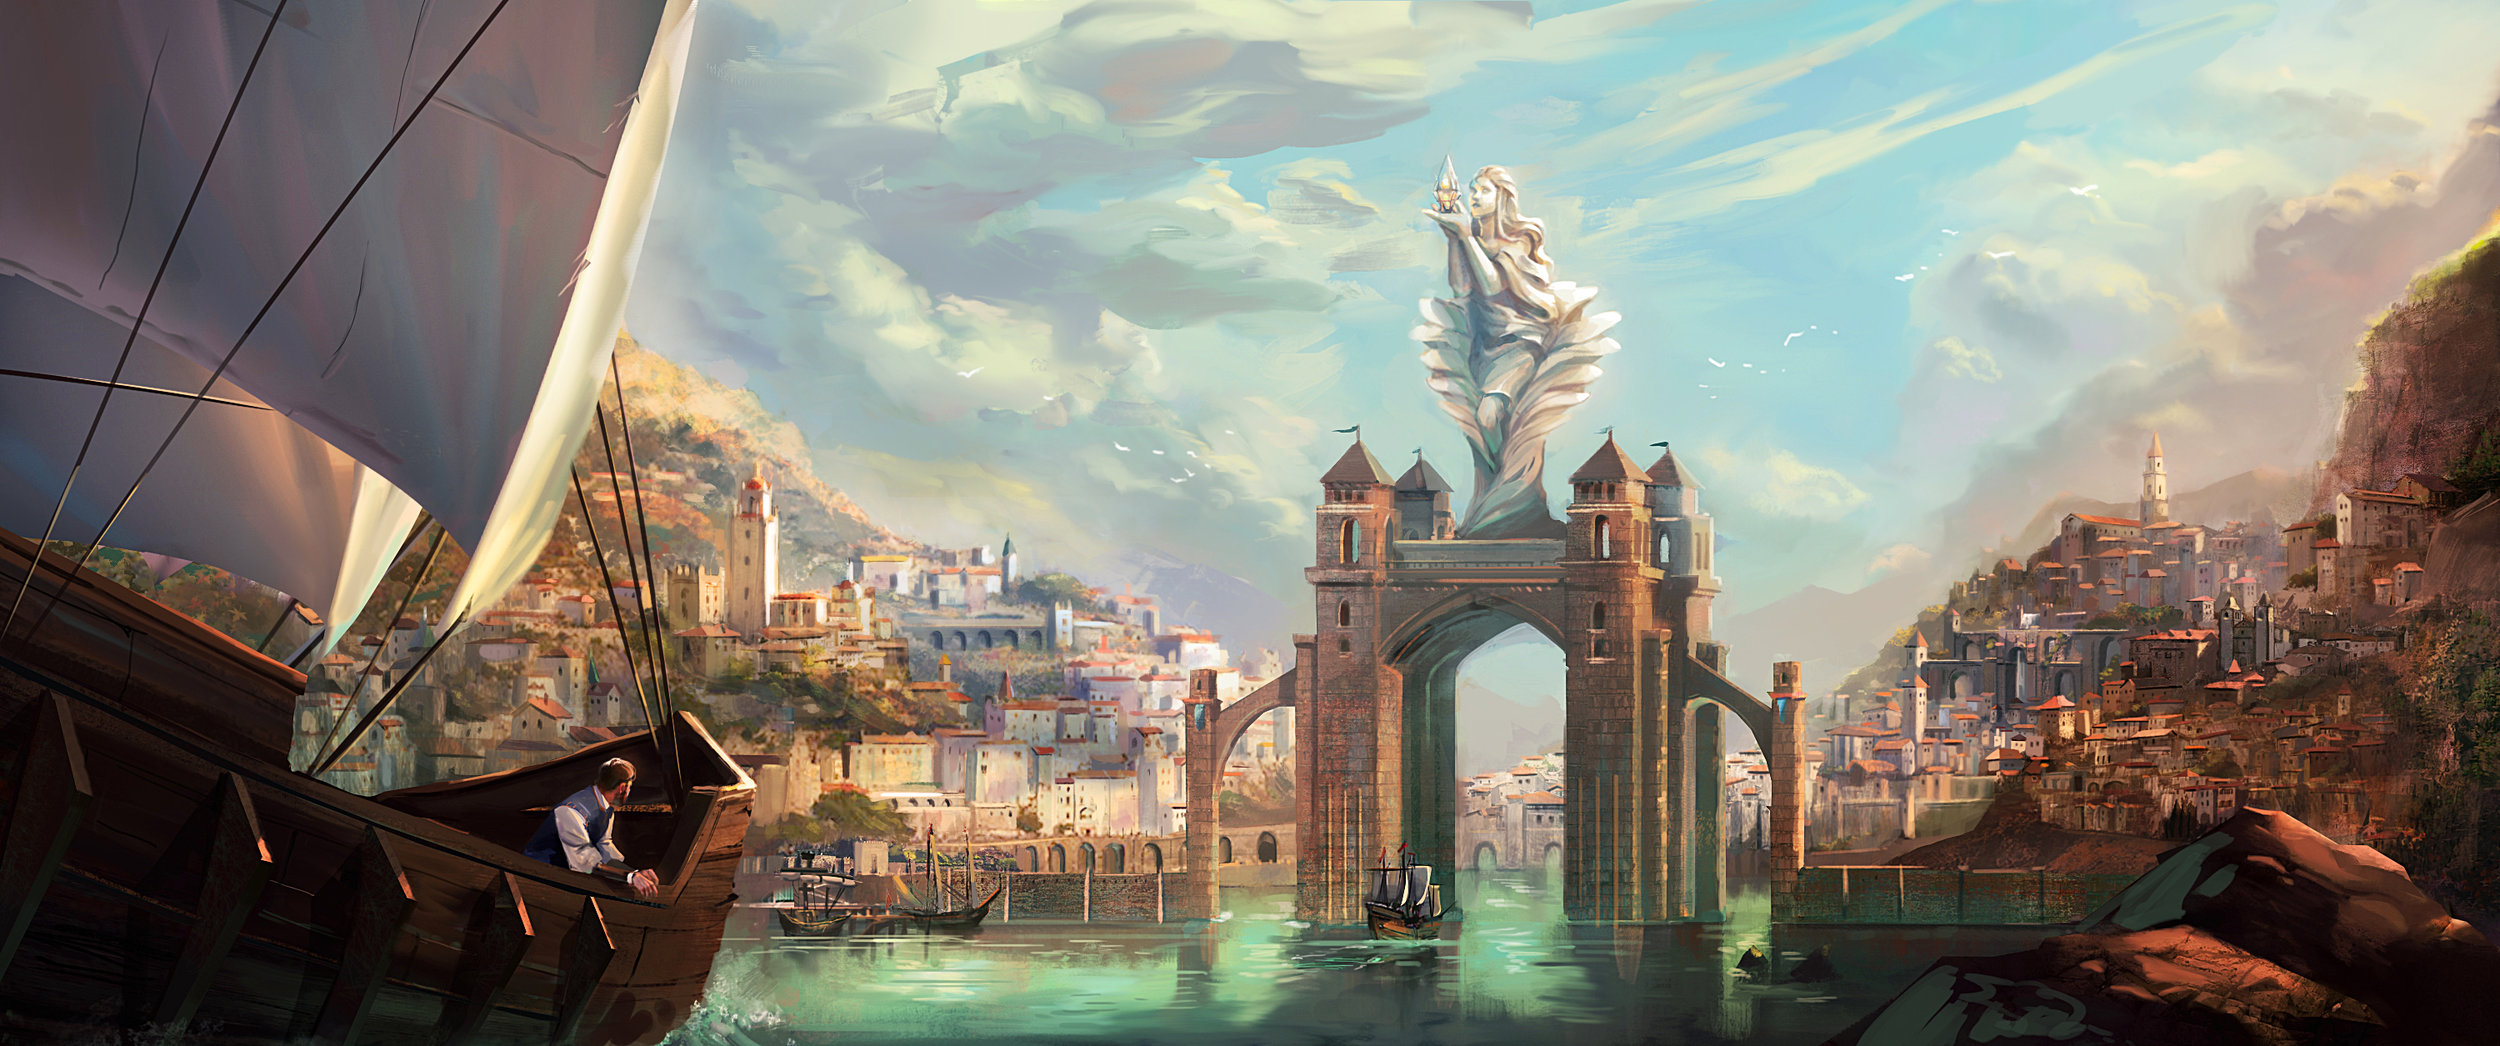 An illustration for 'City of Thaldron' Project